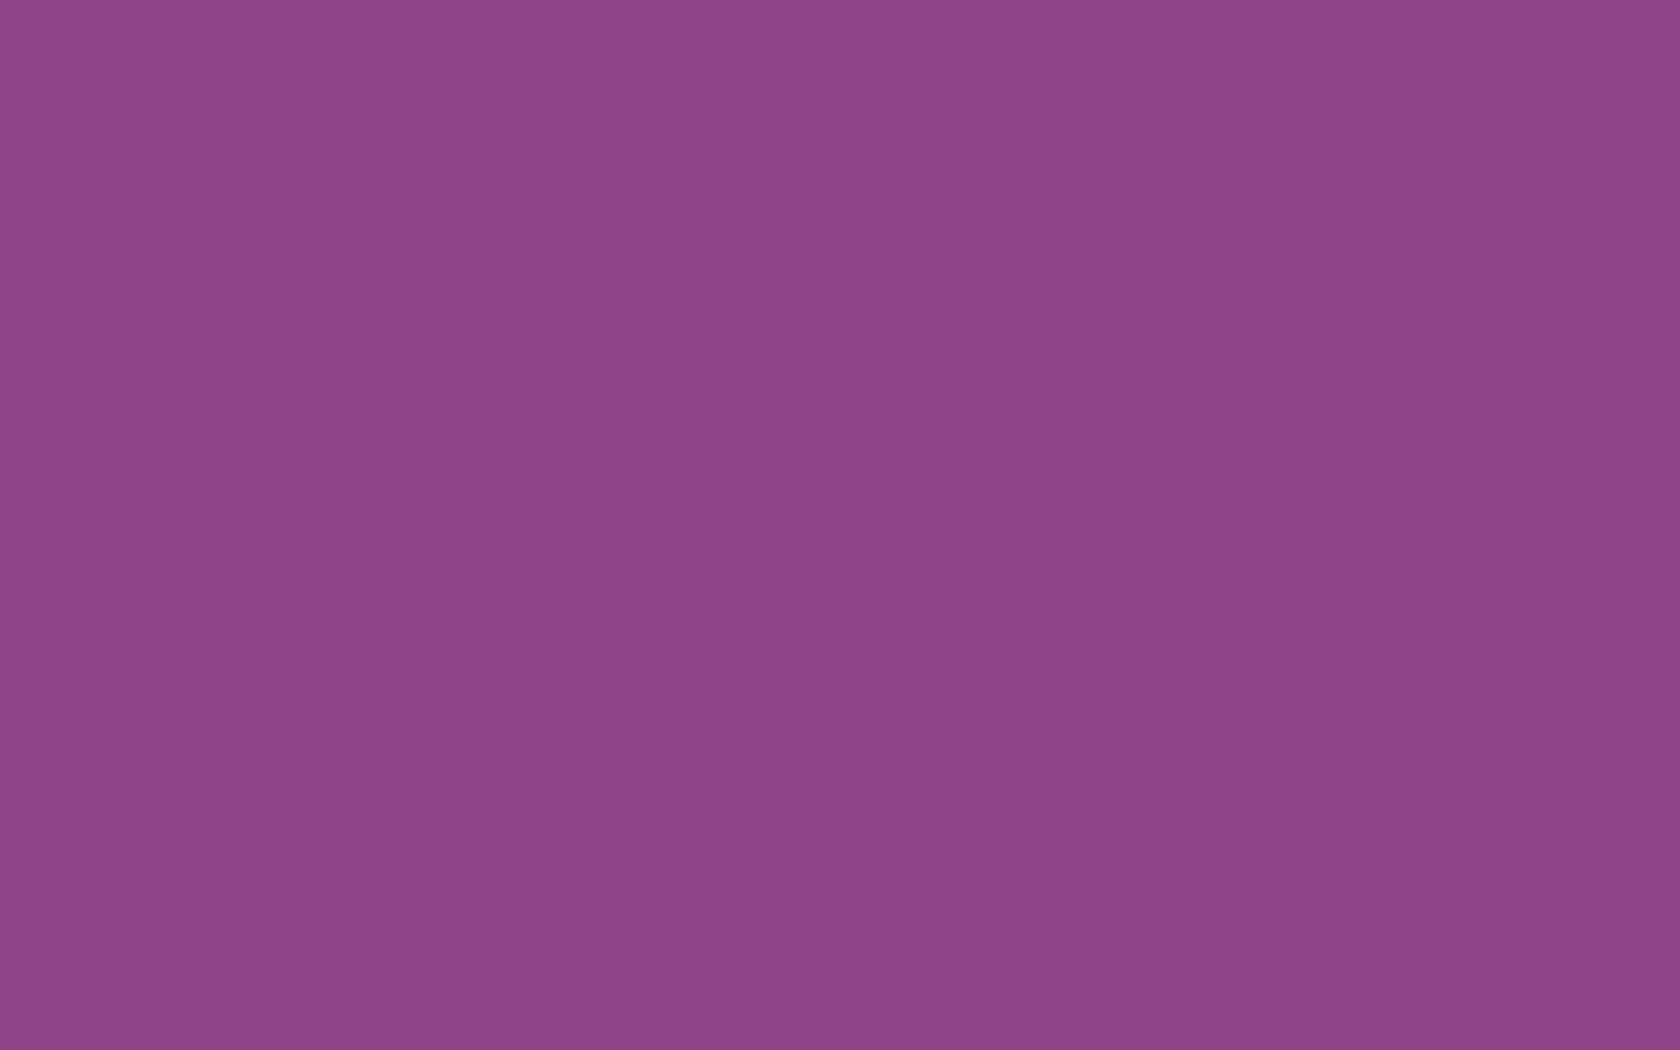 1680x1050 Plum Traditional Solid Color Background